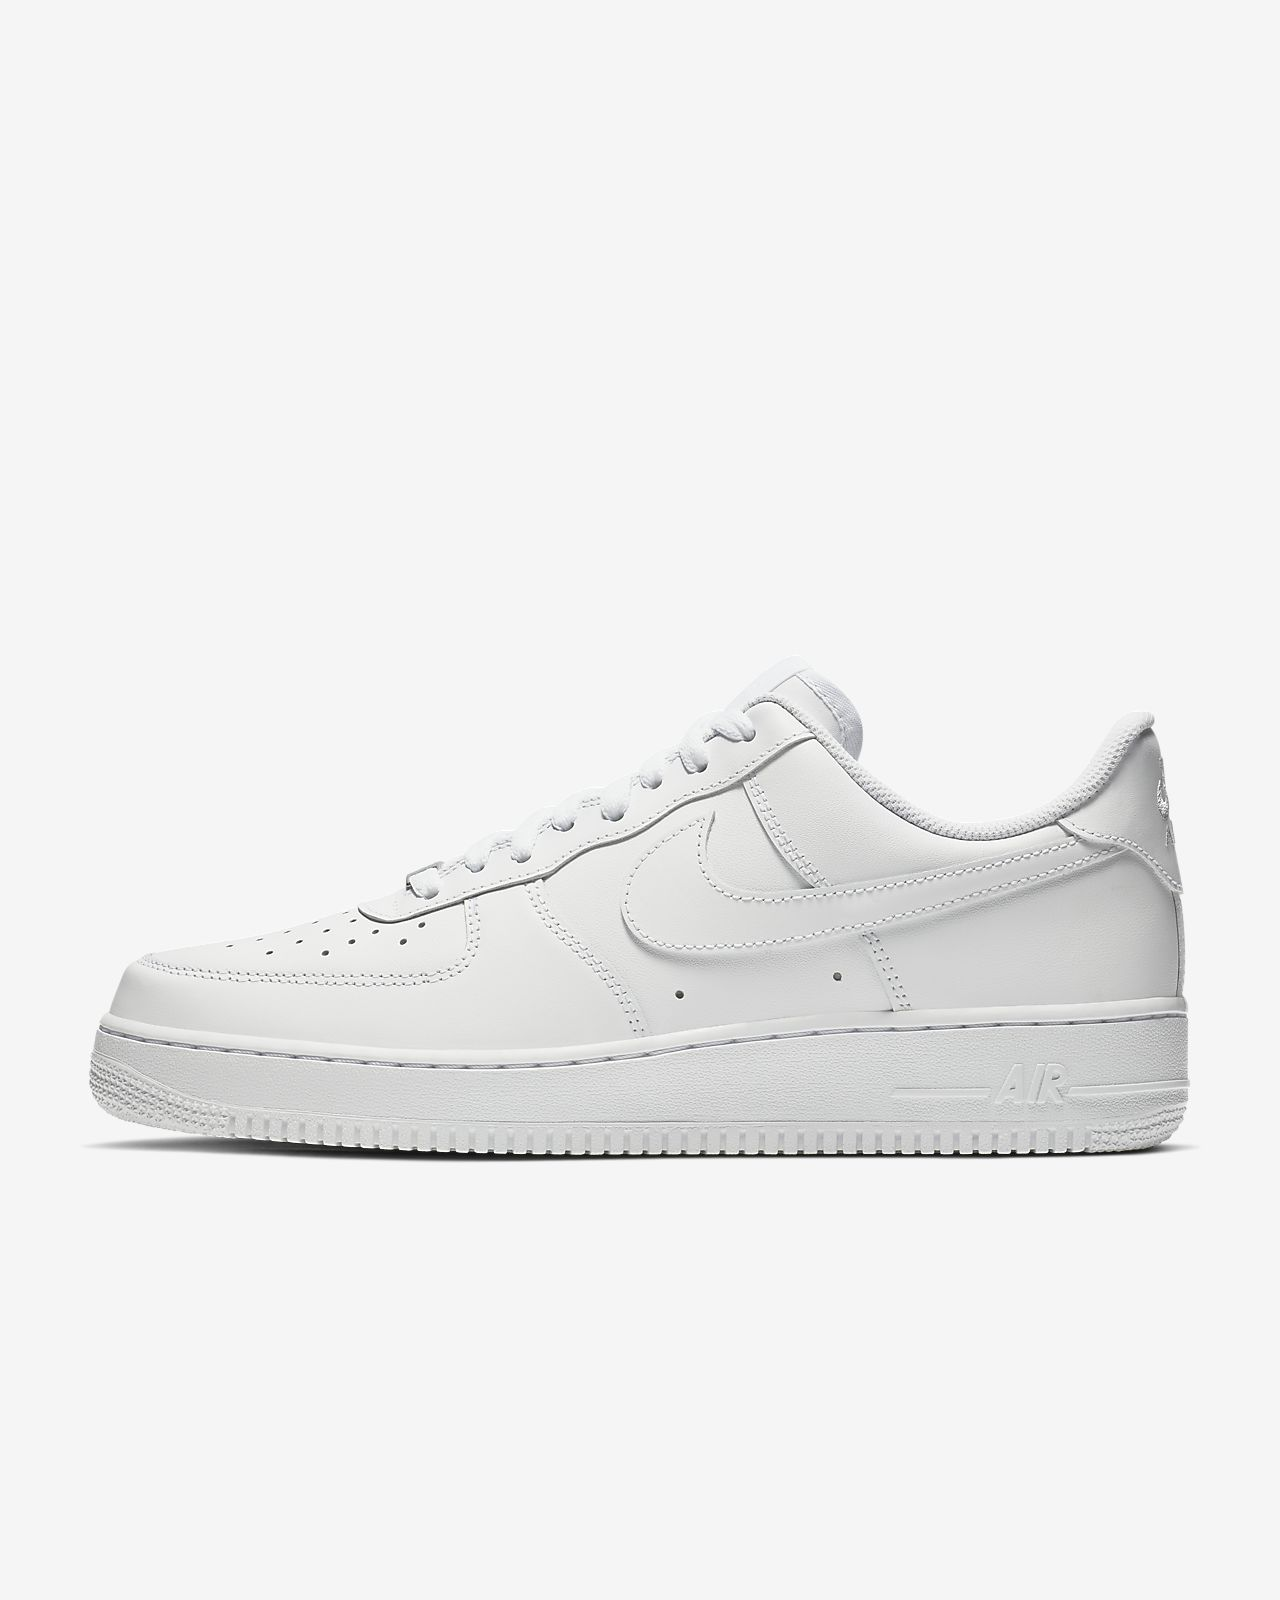 Nike Air Force 1 '07 Shoe